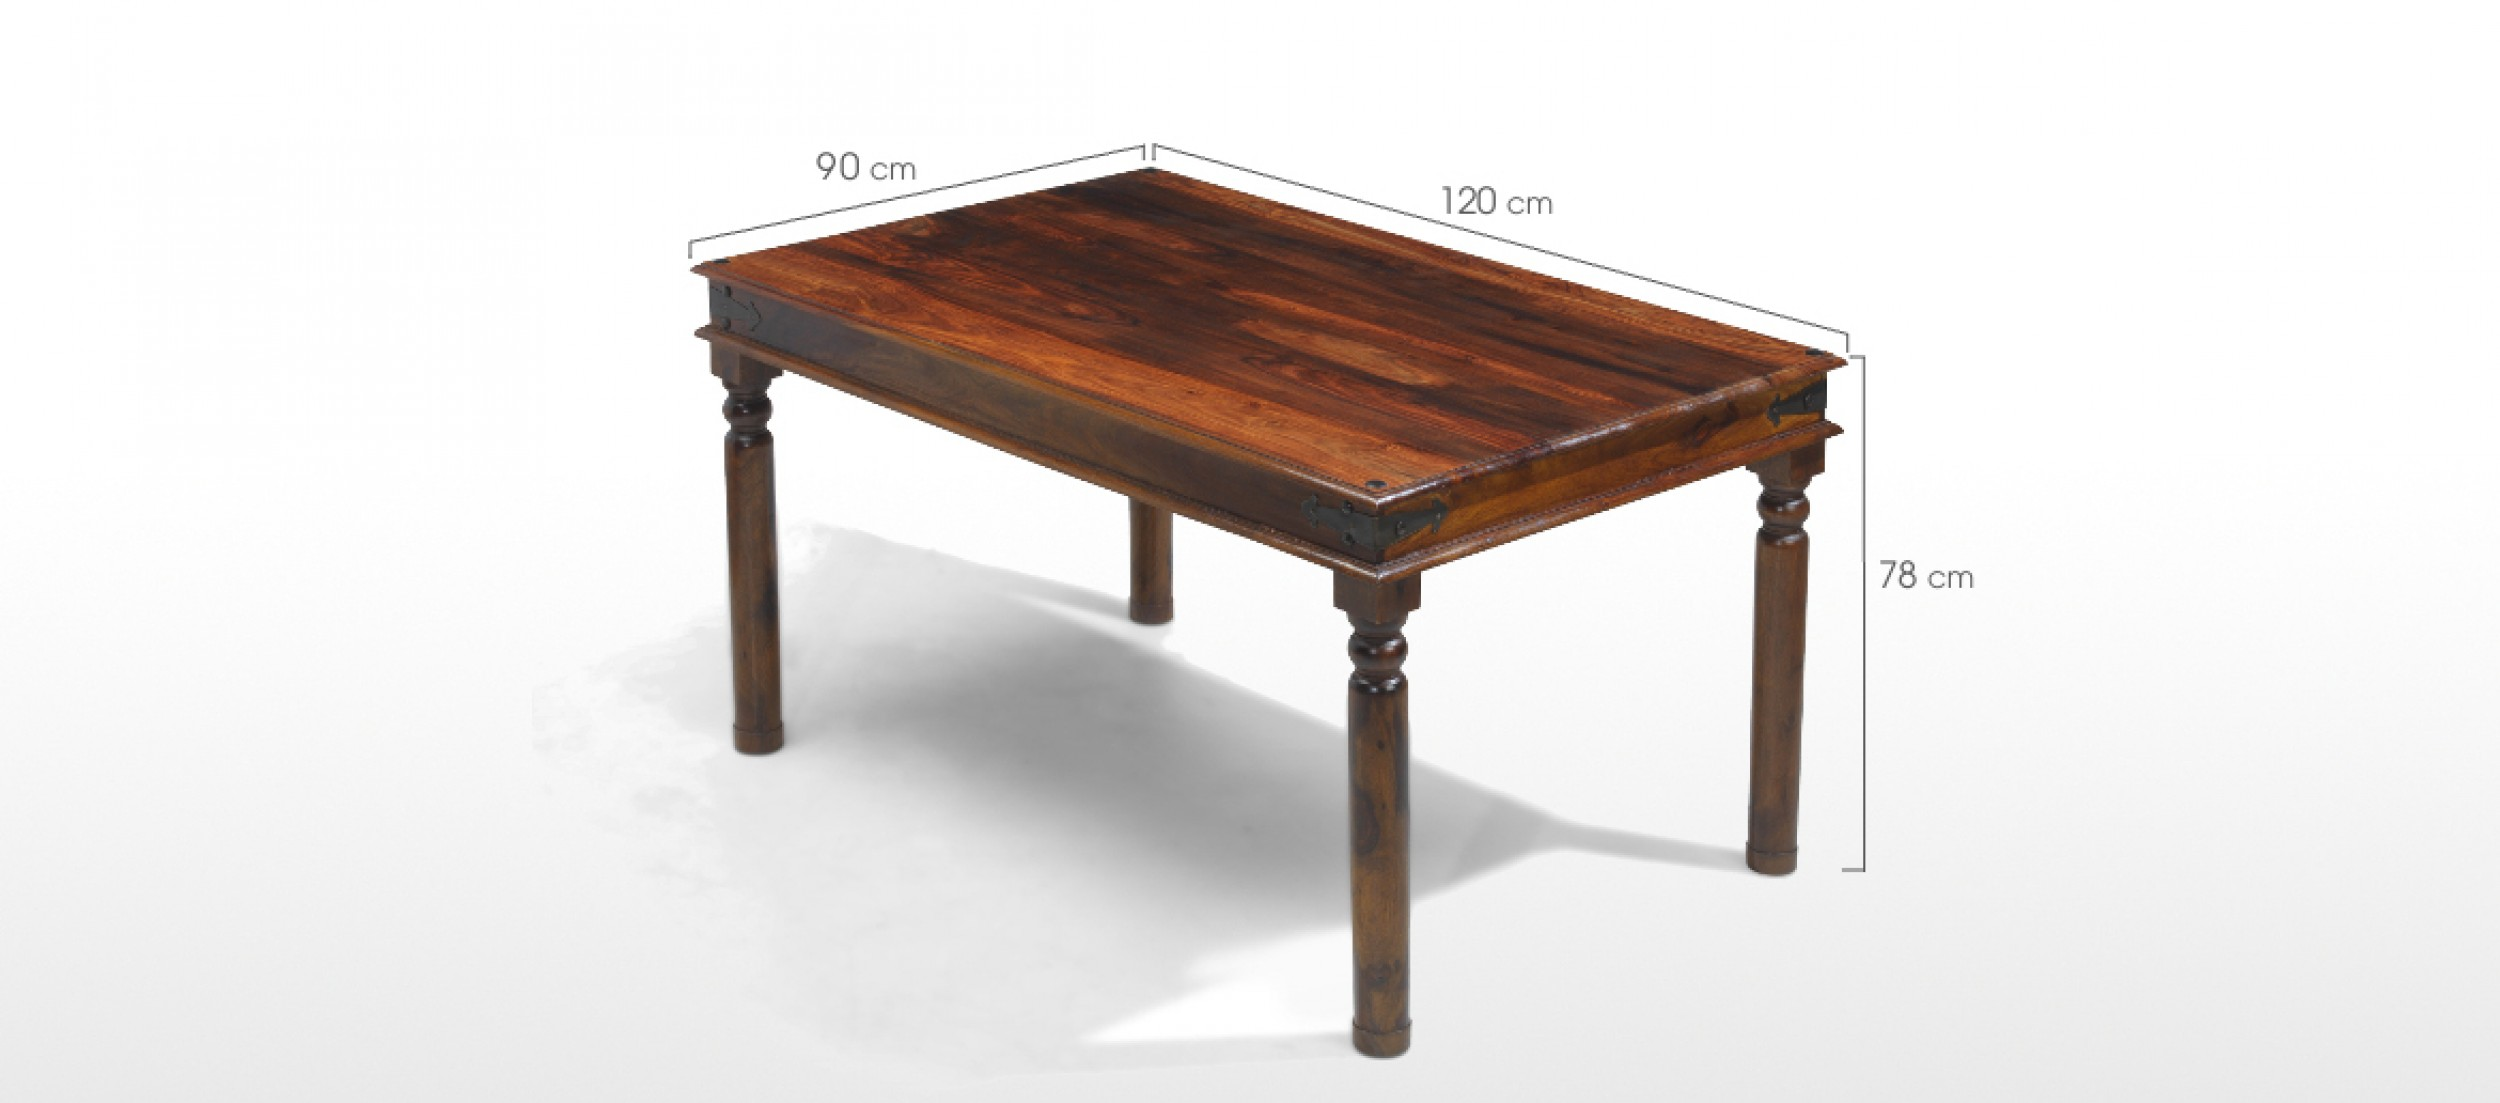 Jali sheesham 120 cm thakat dining table and 4 chairs for 120 dining table sets